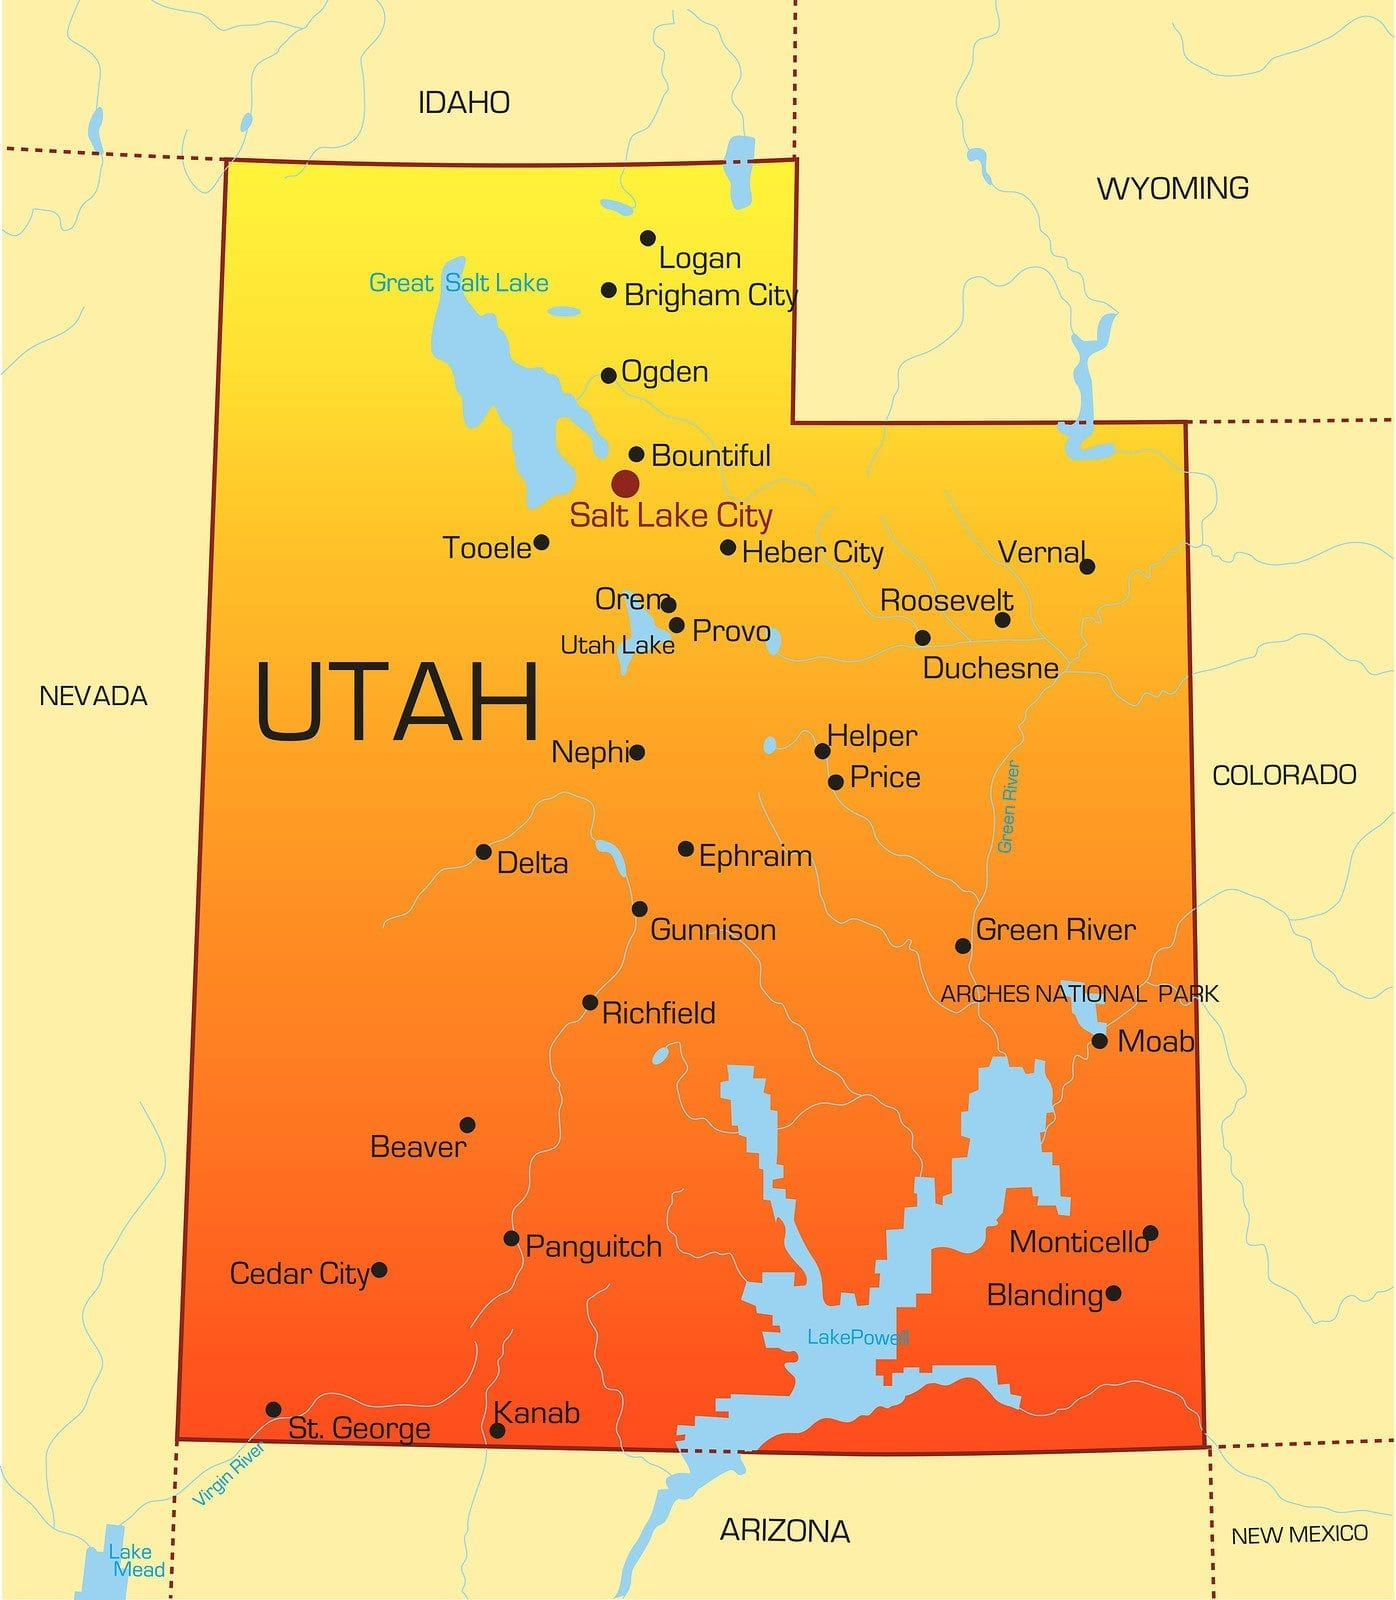 Arizona lpn requirements and training programs utah lpn requirements and training programs xflitez Image collections